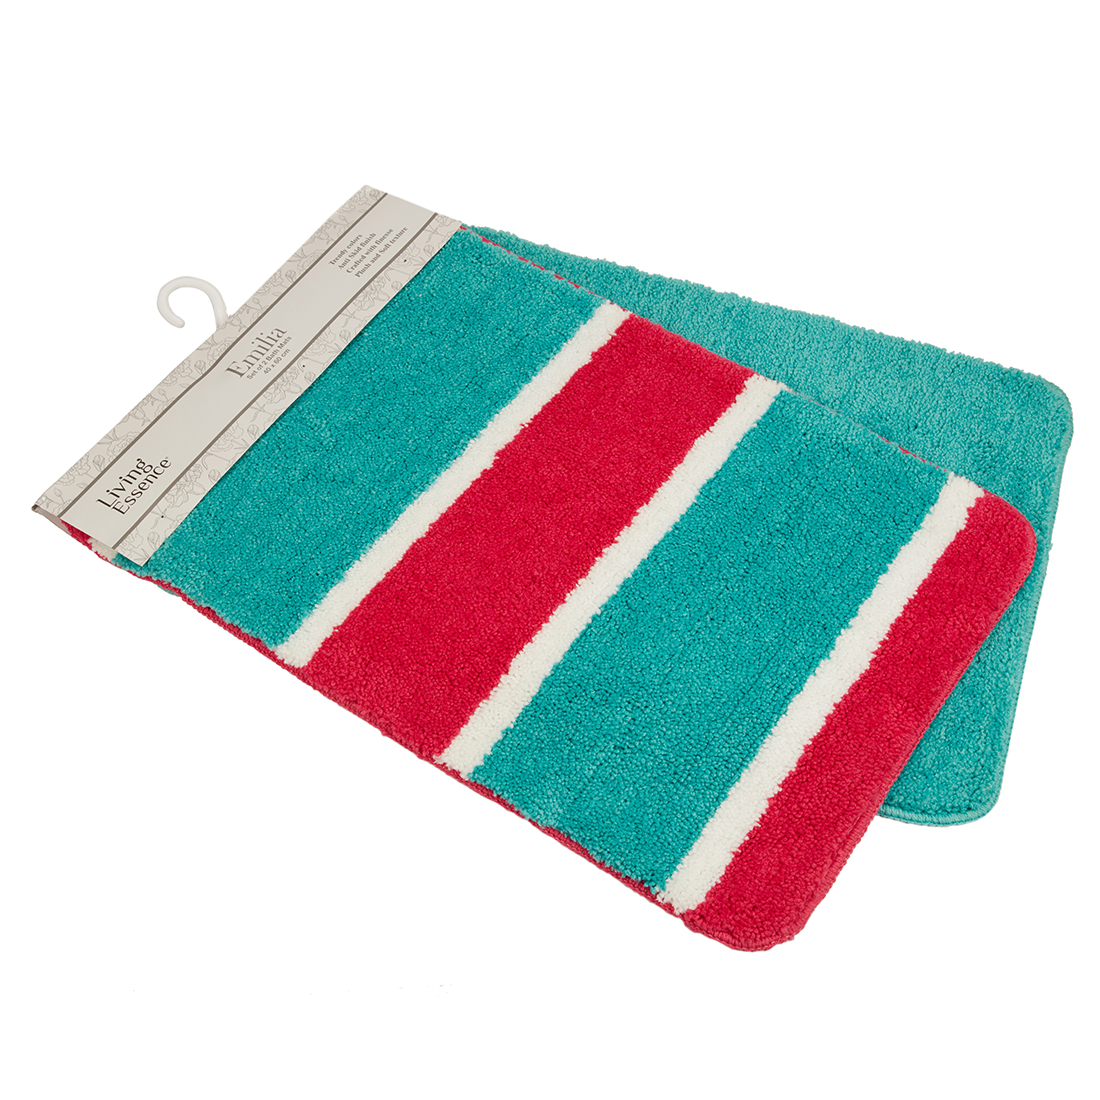 Set of 2 Bathmats Pink and Teal Bath Mats in Pink Teal Colour by Living Essence